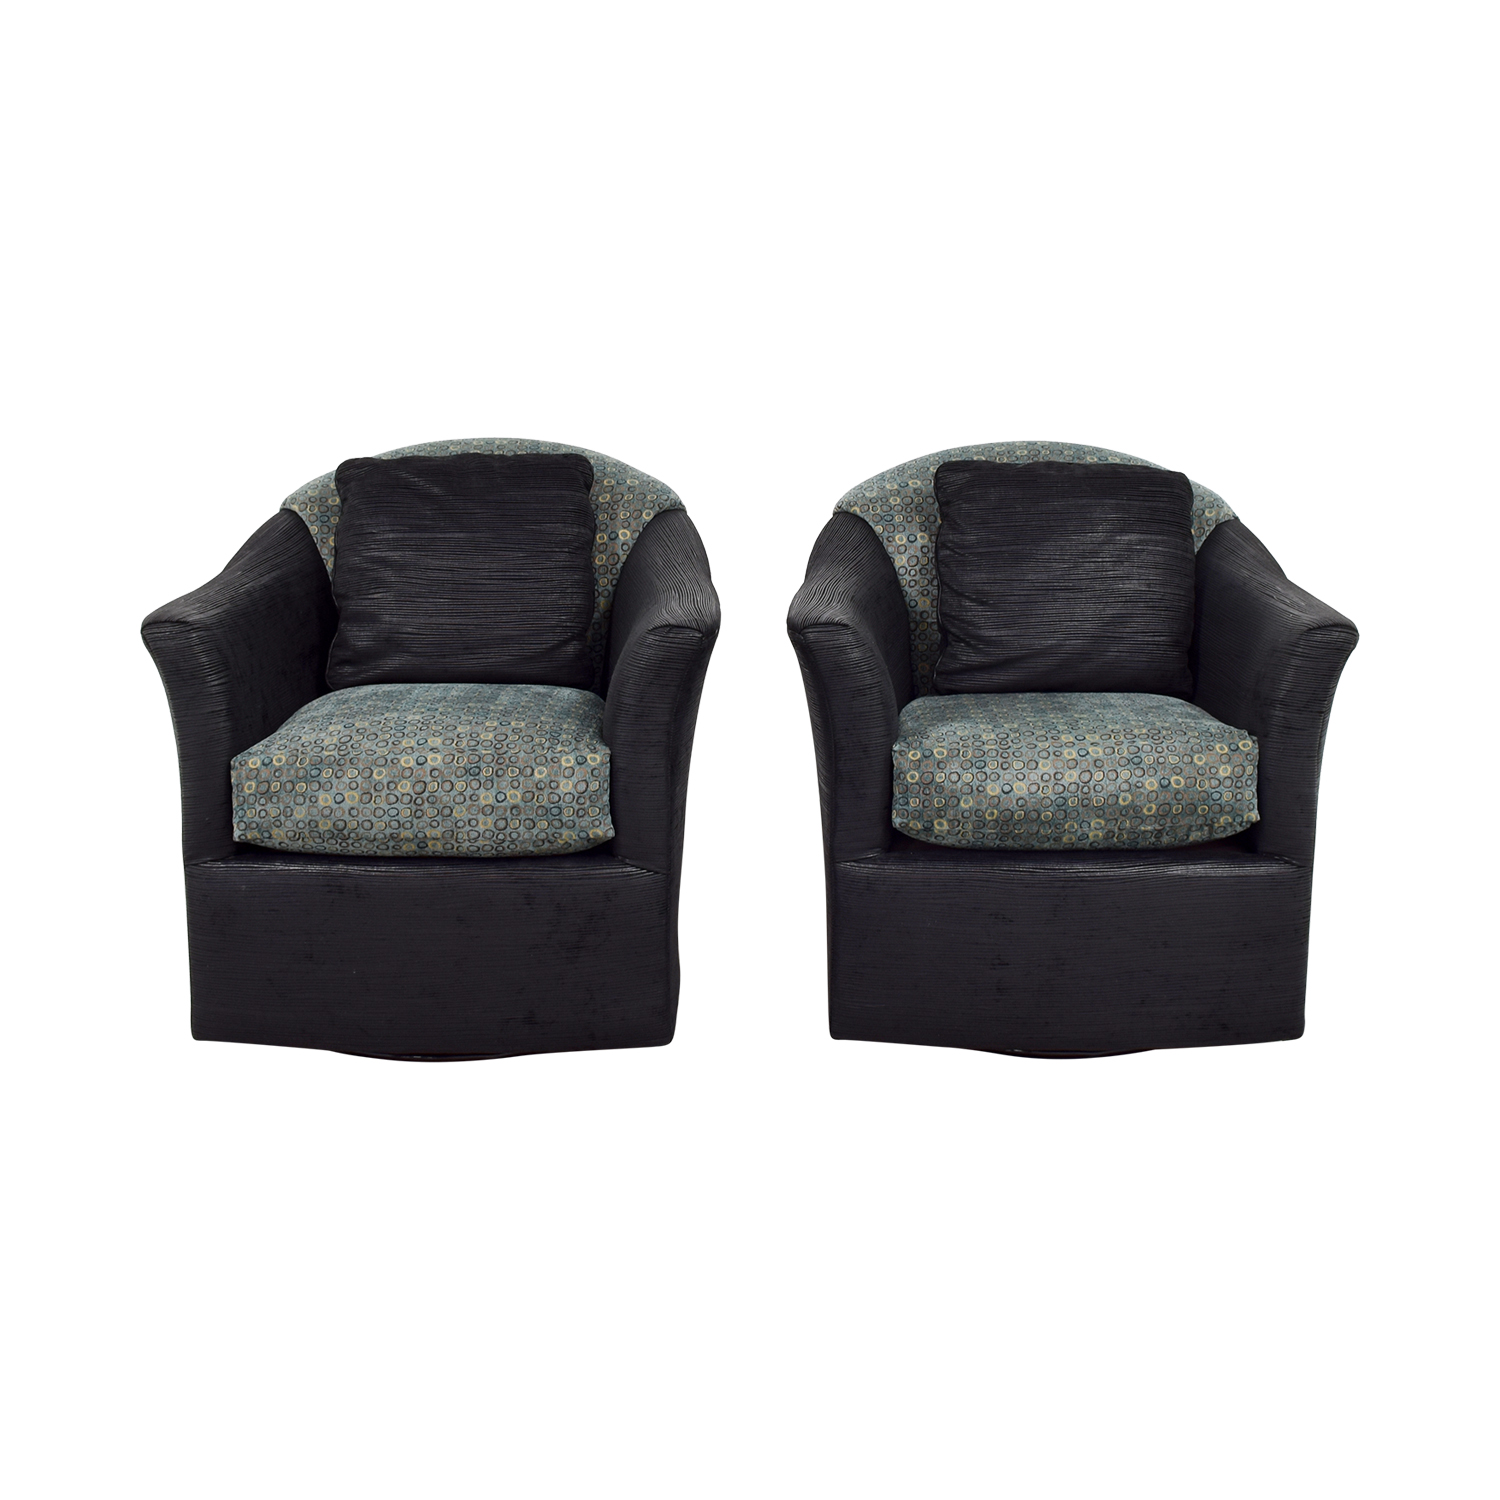 Fairfield Fairfield Barrel Black Blue and Gold Accent Chairs for sale